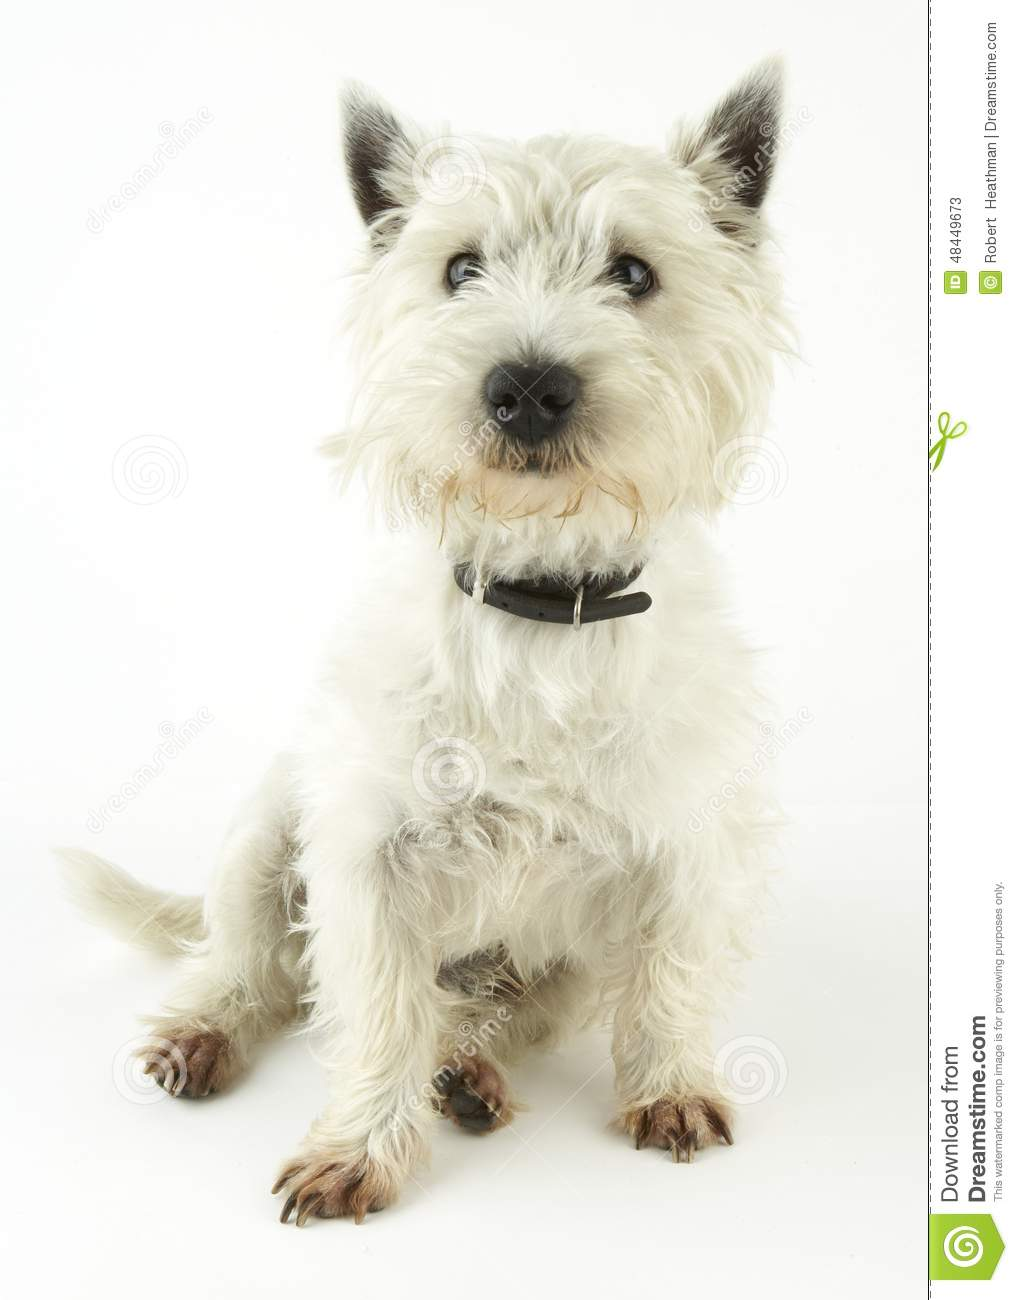 Chien terrier blanc de montagne occidentale